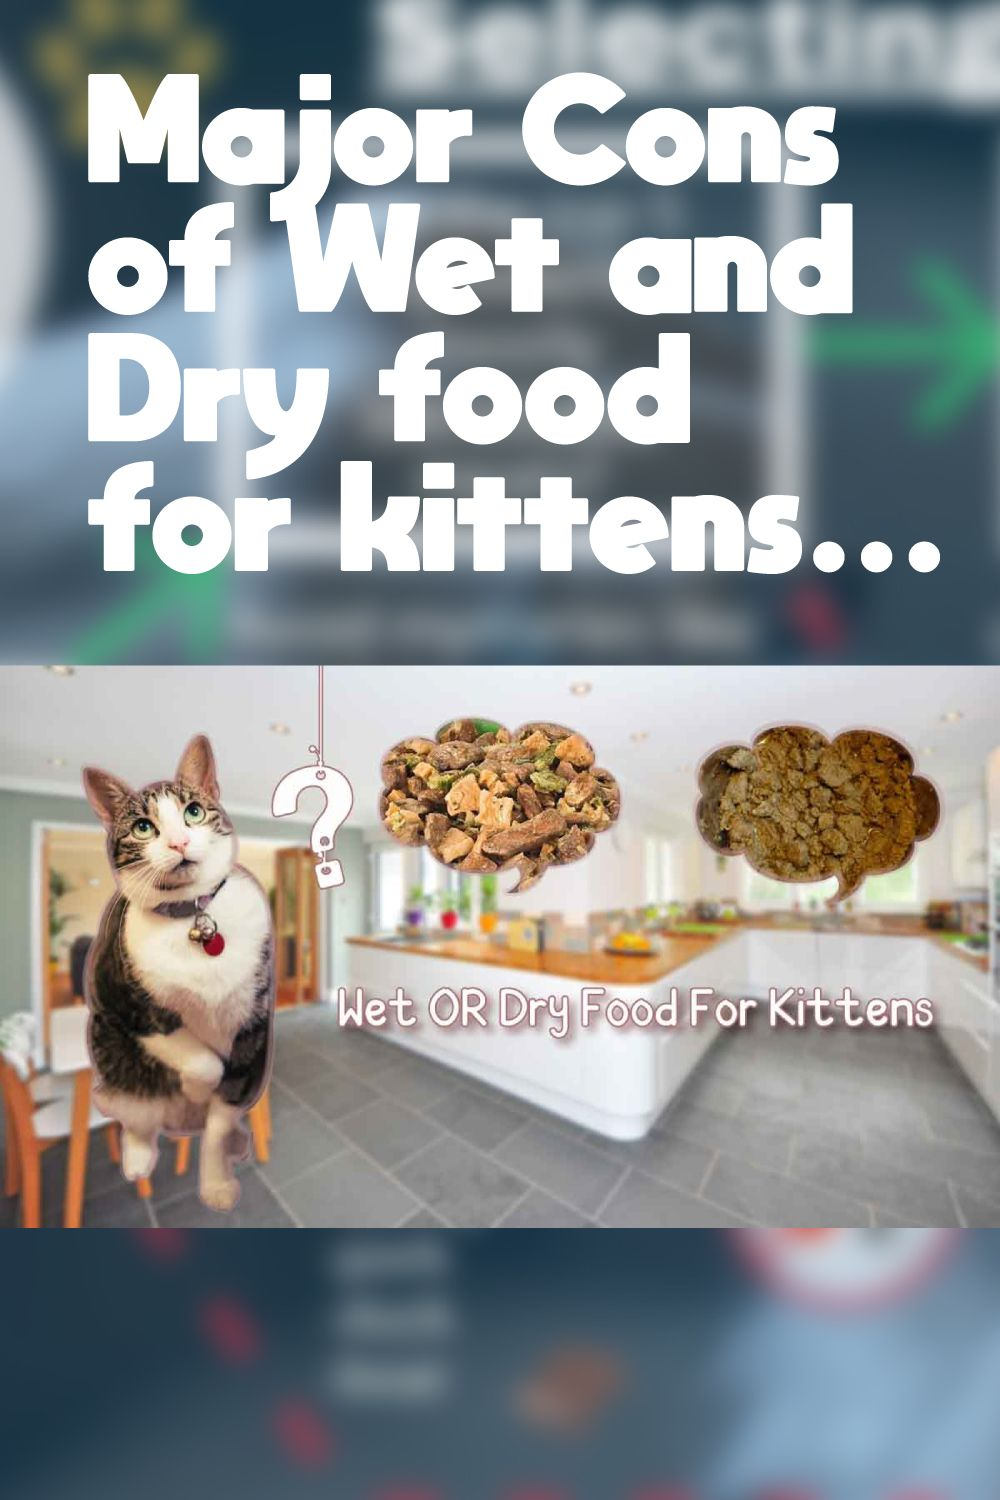 Wet Or Dry Food For Kittens Mypetguides 2020 In 2020 Best Cat Food Cat Food Brands Feeding Kittens